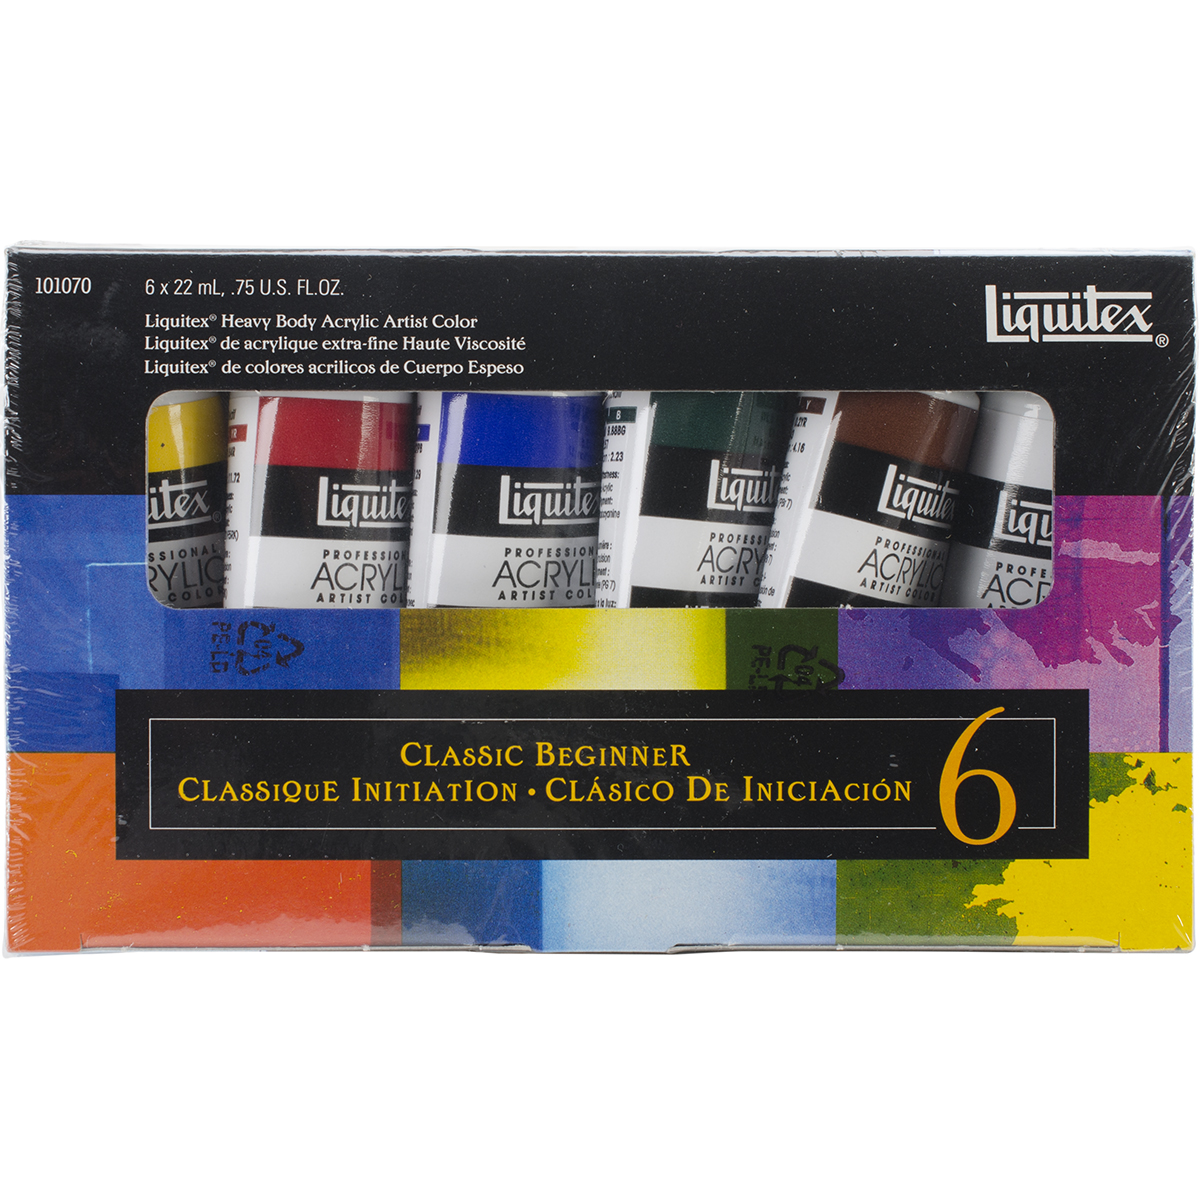 Liquitex Professional Heavy Body The Classic Beginner Set Multi-Colored